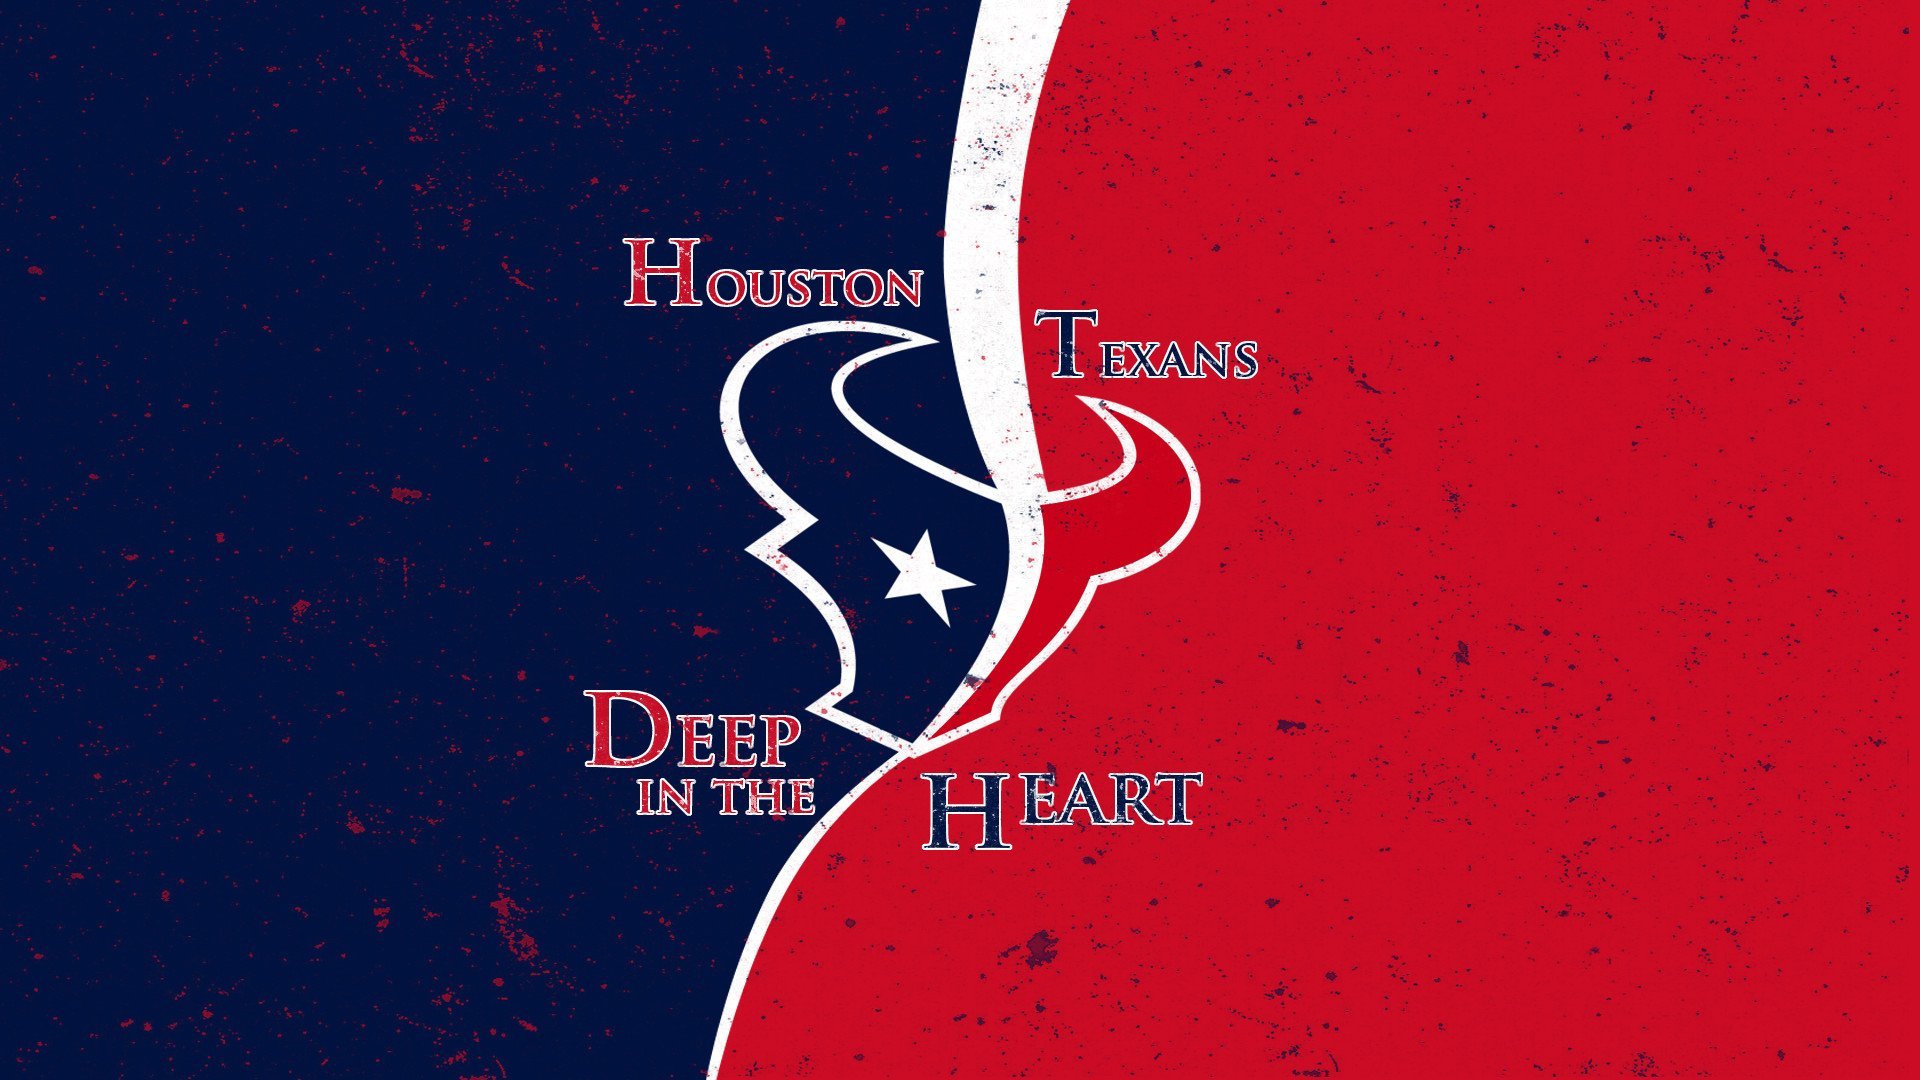 HOUSTON TEXANS nfl football js wallpaper background 1920x1080